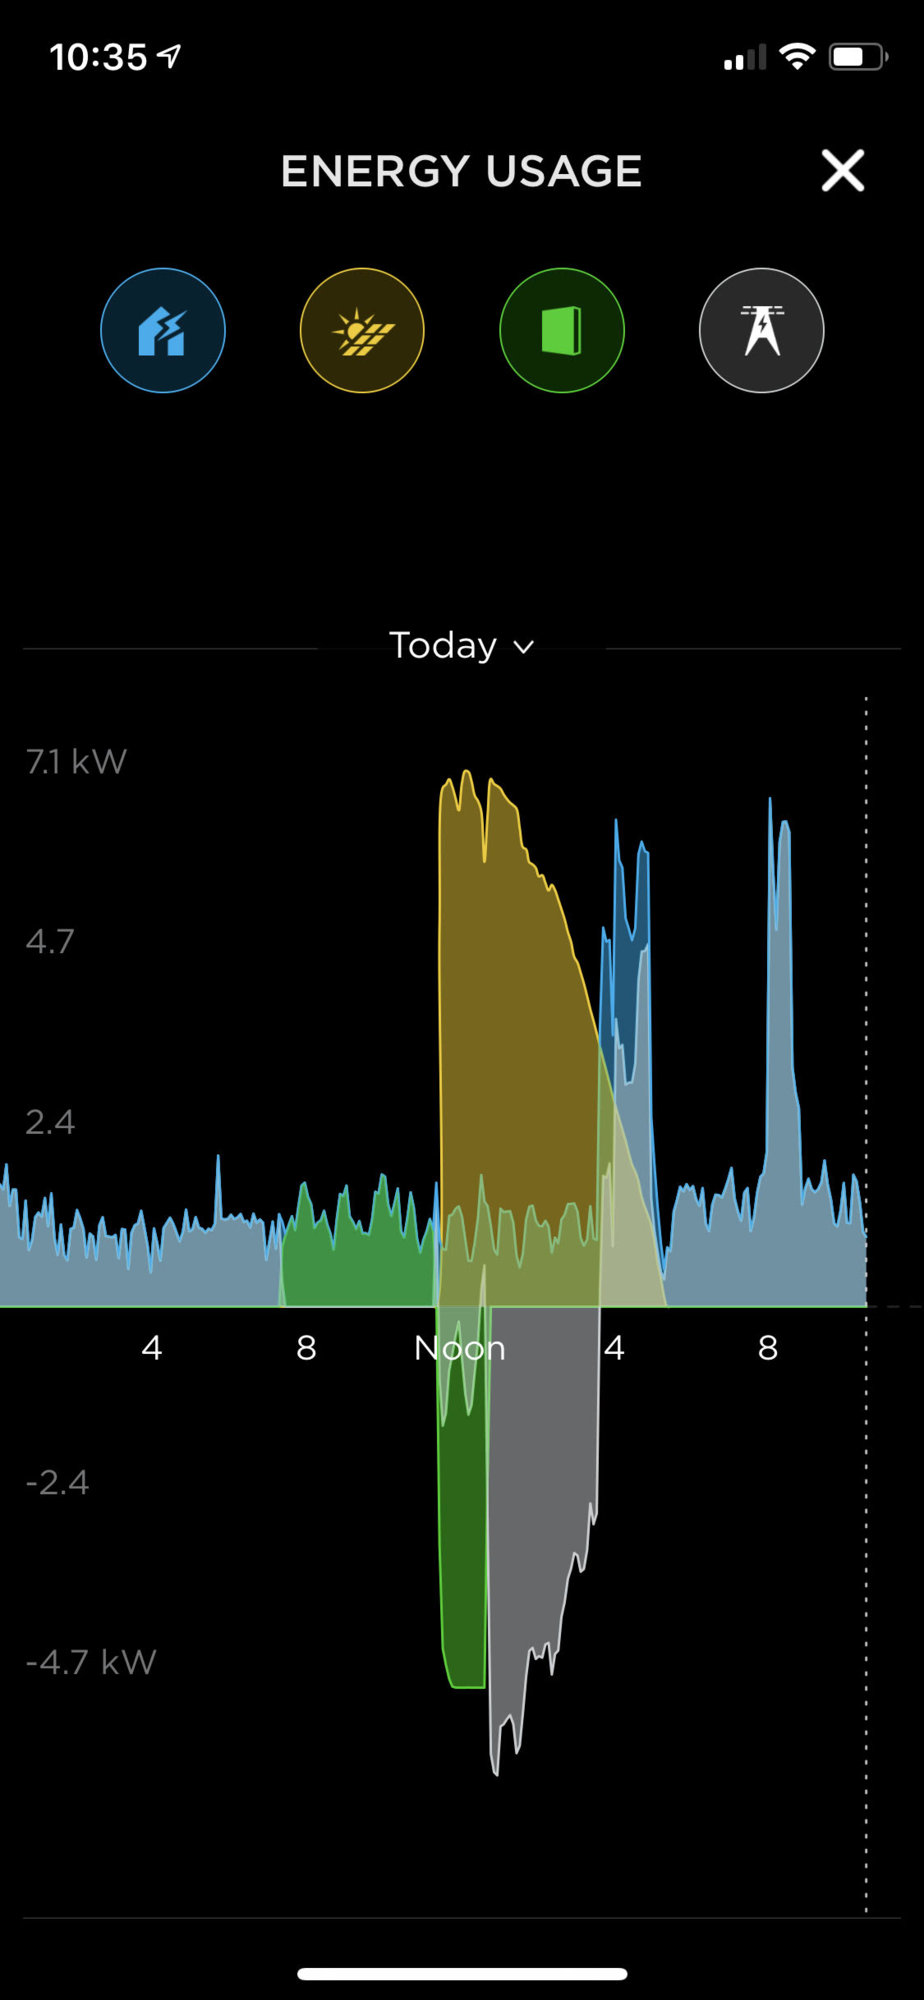 Energy Usage - Outage.jpg